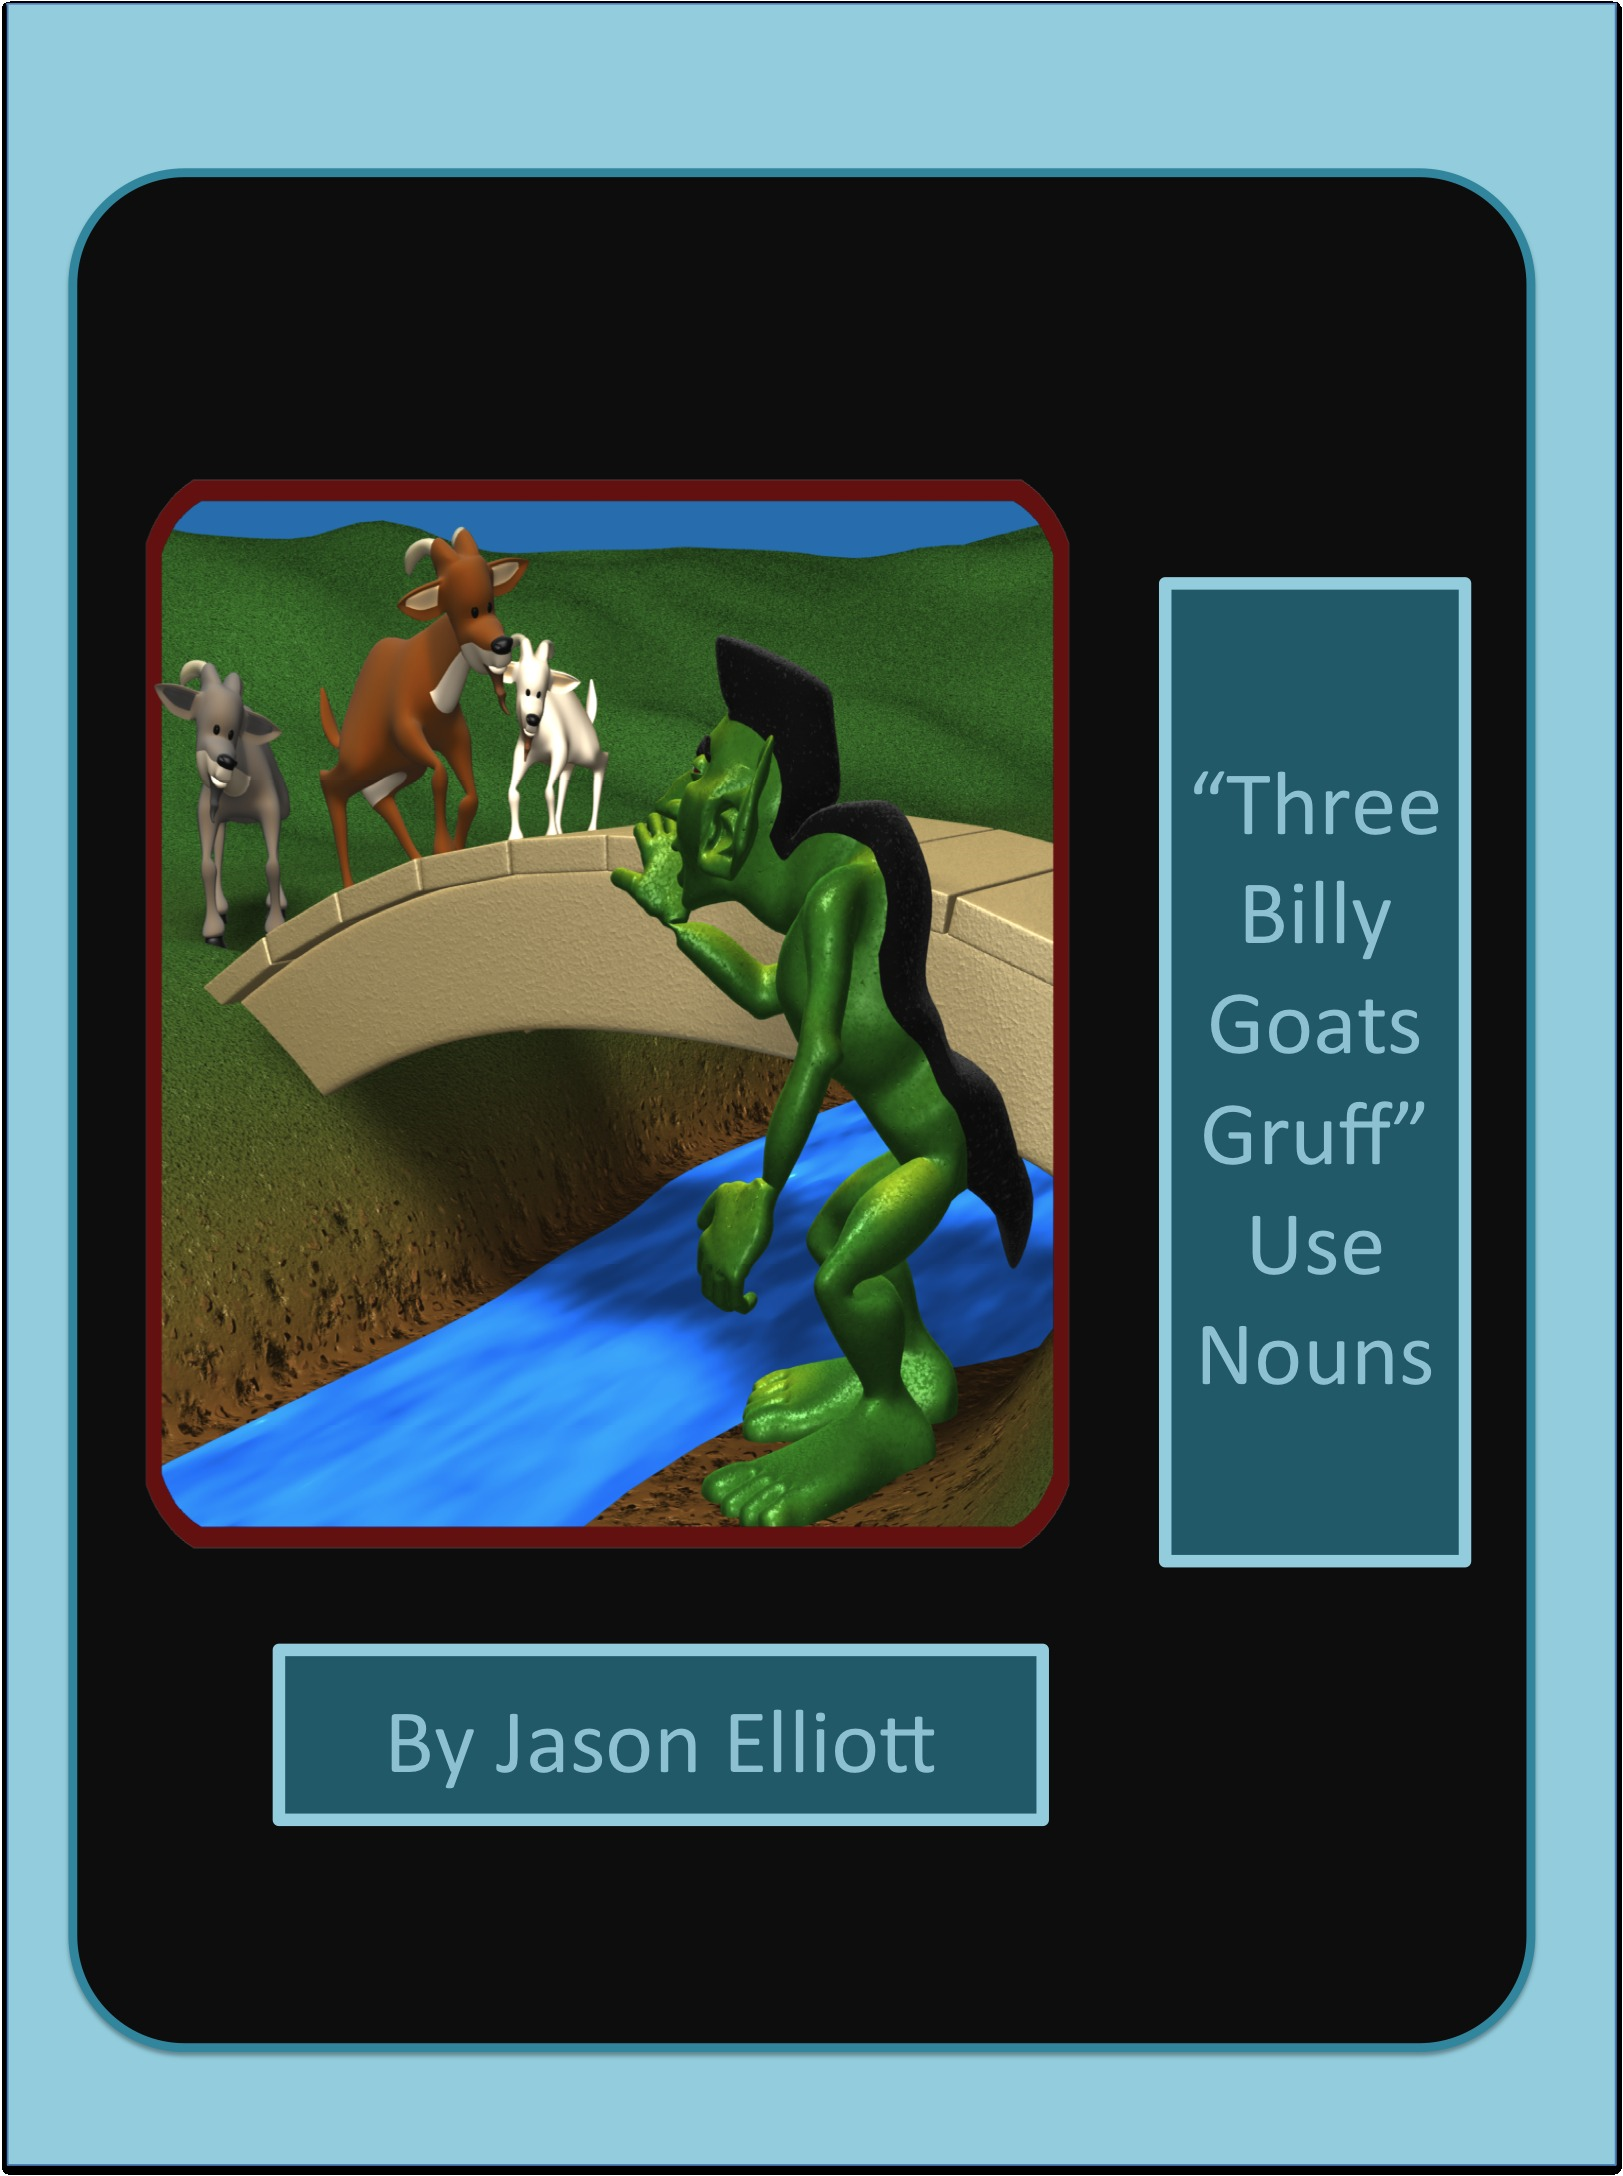 The Three Billy Goats Gruff Uses Nouns By: Jason Elliott